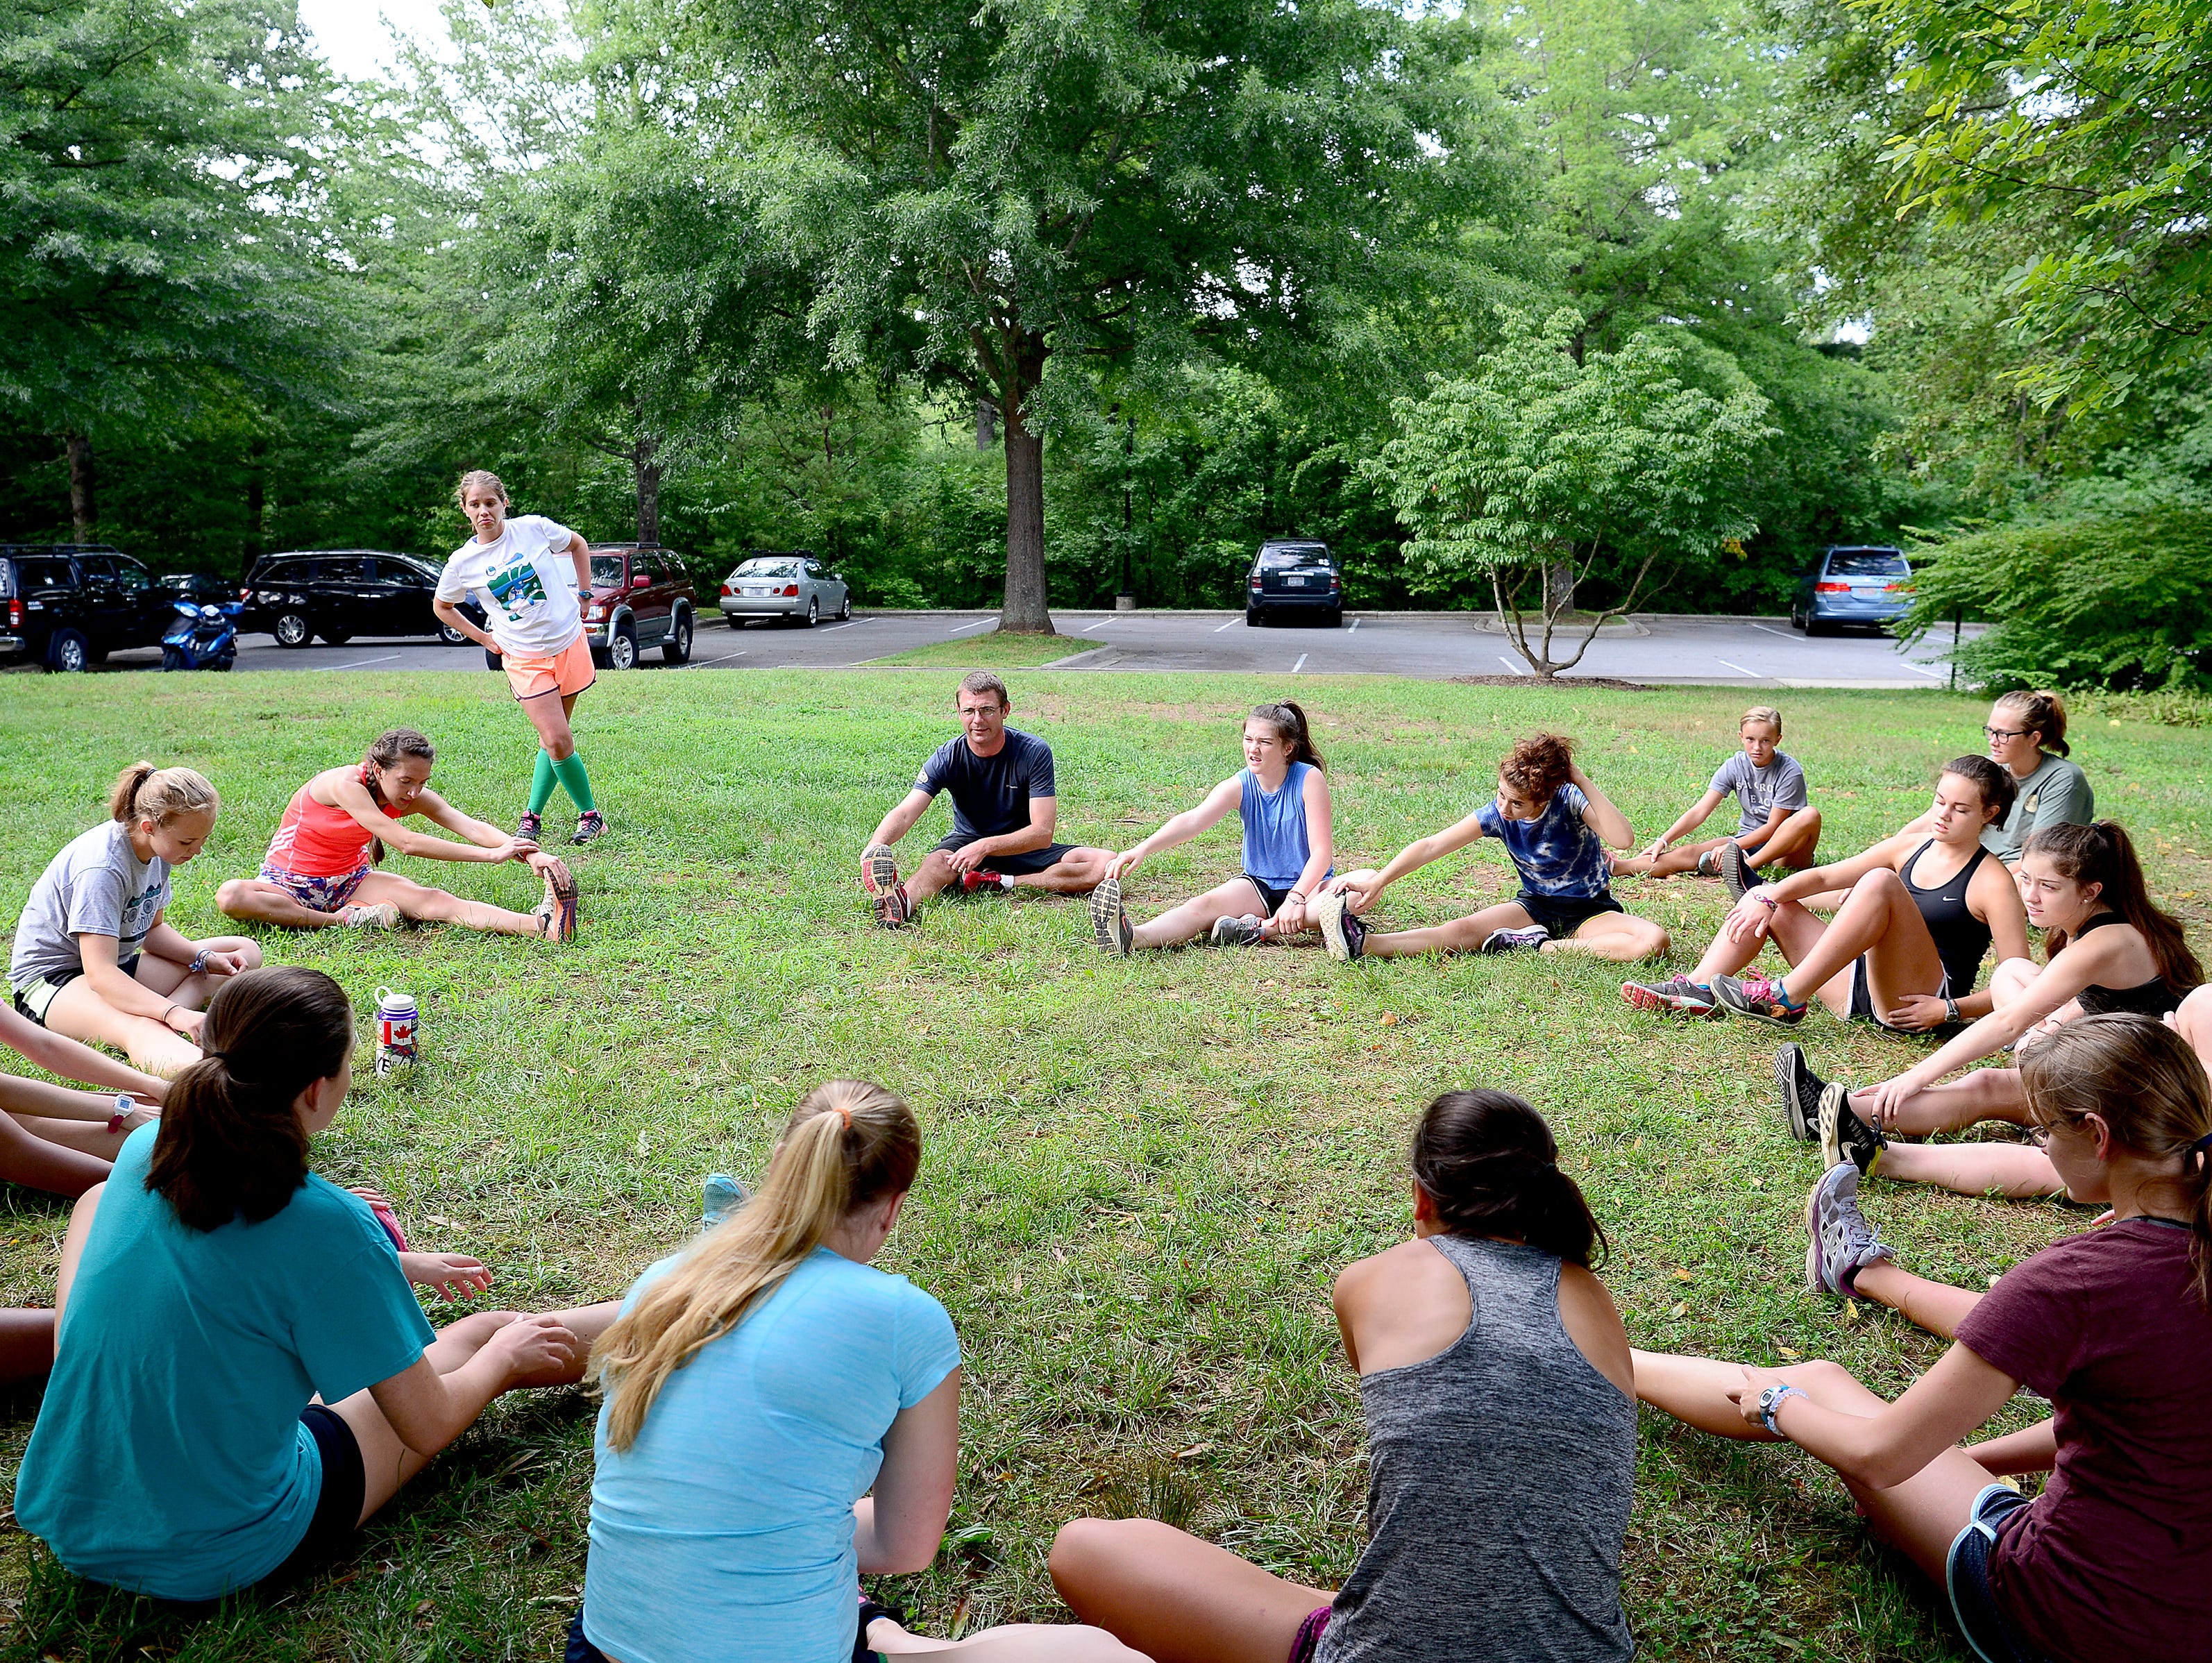 Members of the Roberson girl's cross country team stretch before a workout run at the North Carolina Arboretum on Thursday, Aug. 4, 2016.